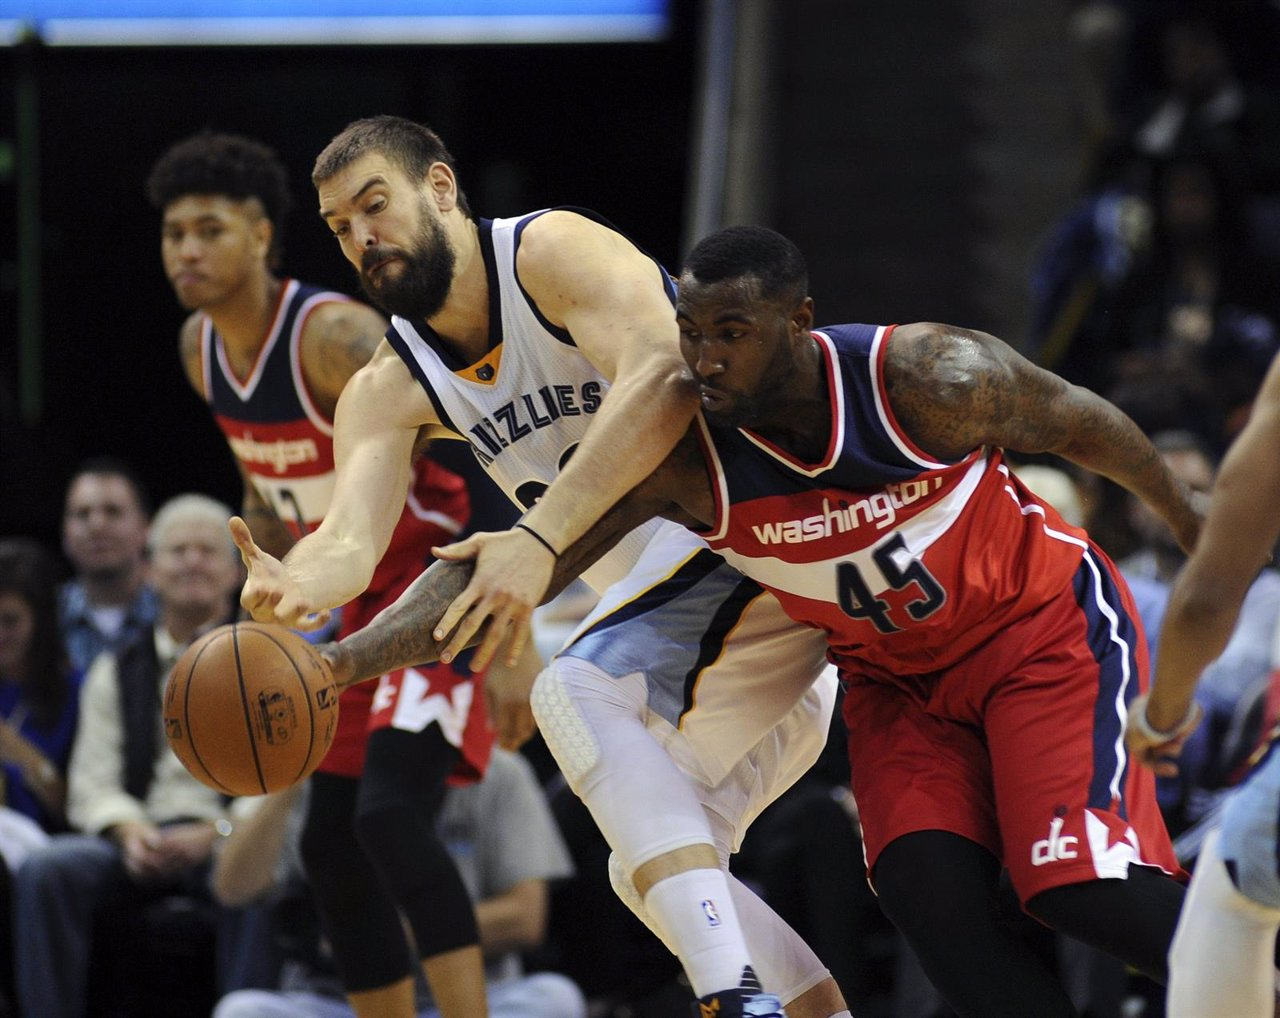 Marc Gasol en el Washington Wizards - Memphis Grizzlies